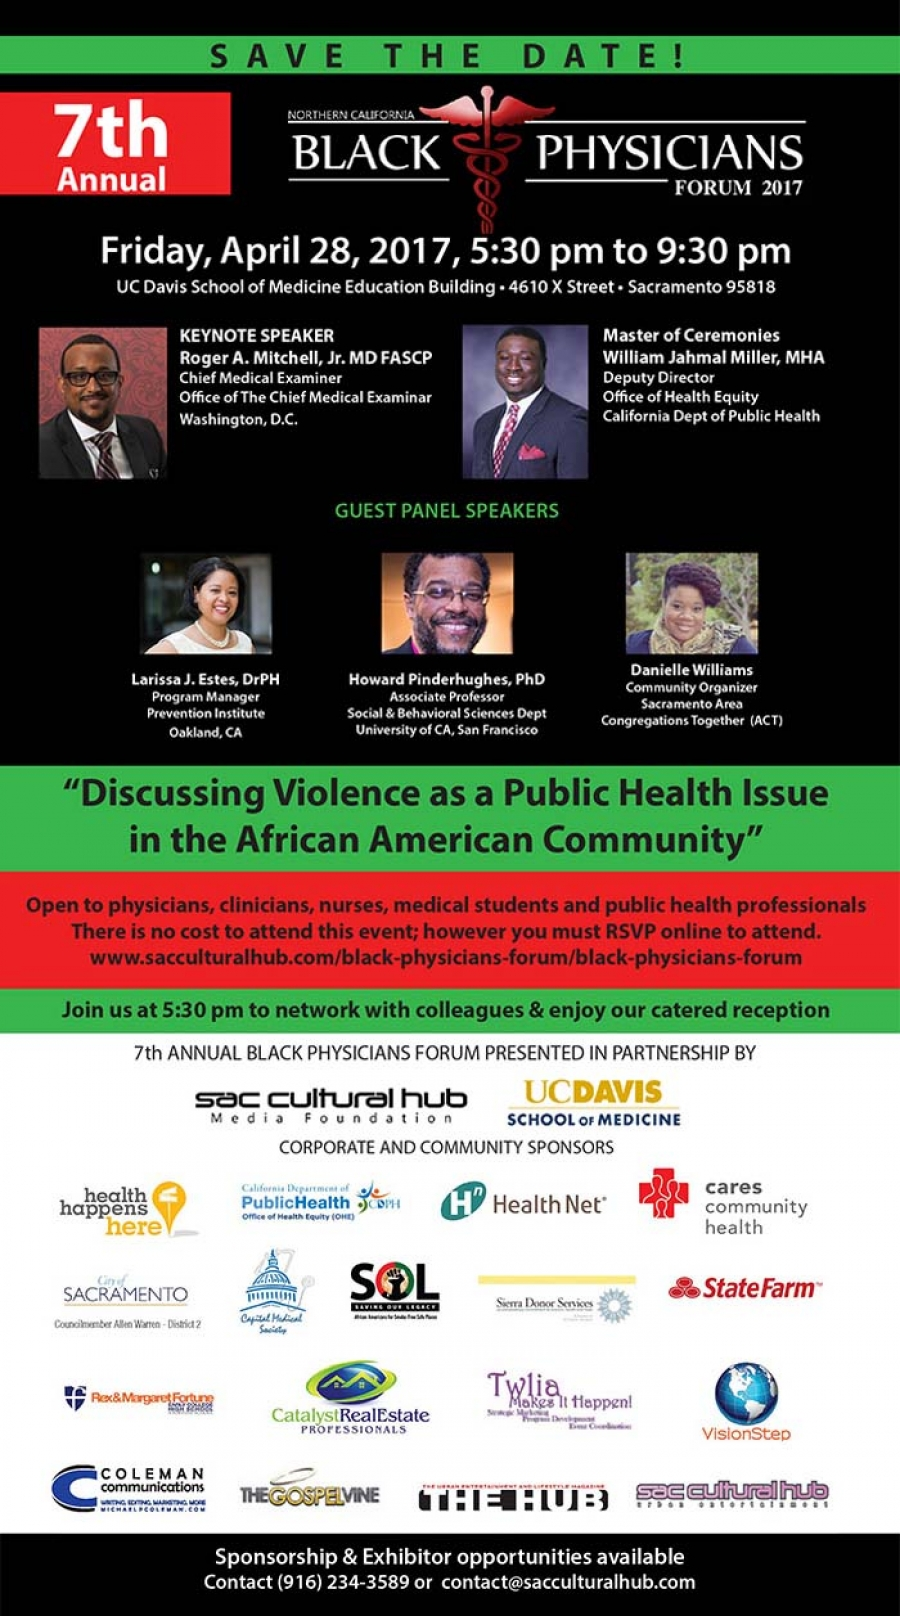 7th Annual Black Physicians Forum in Sacramento